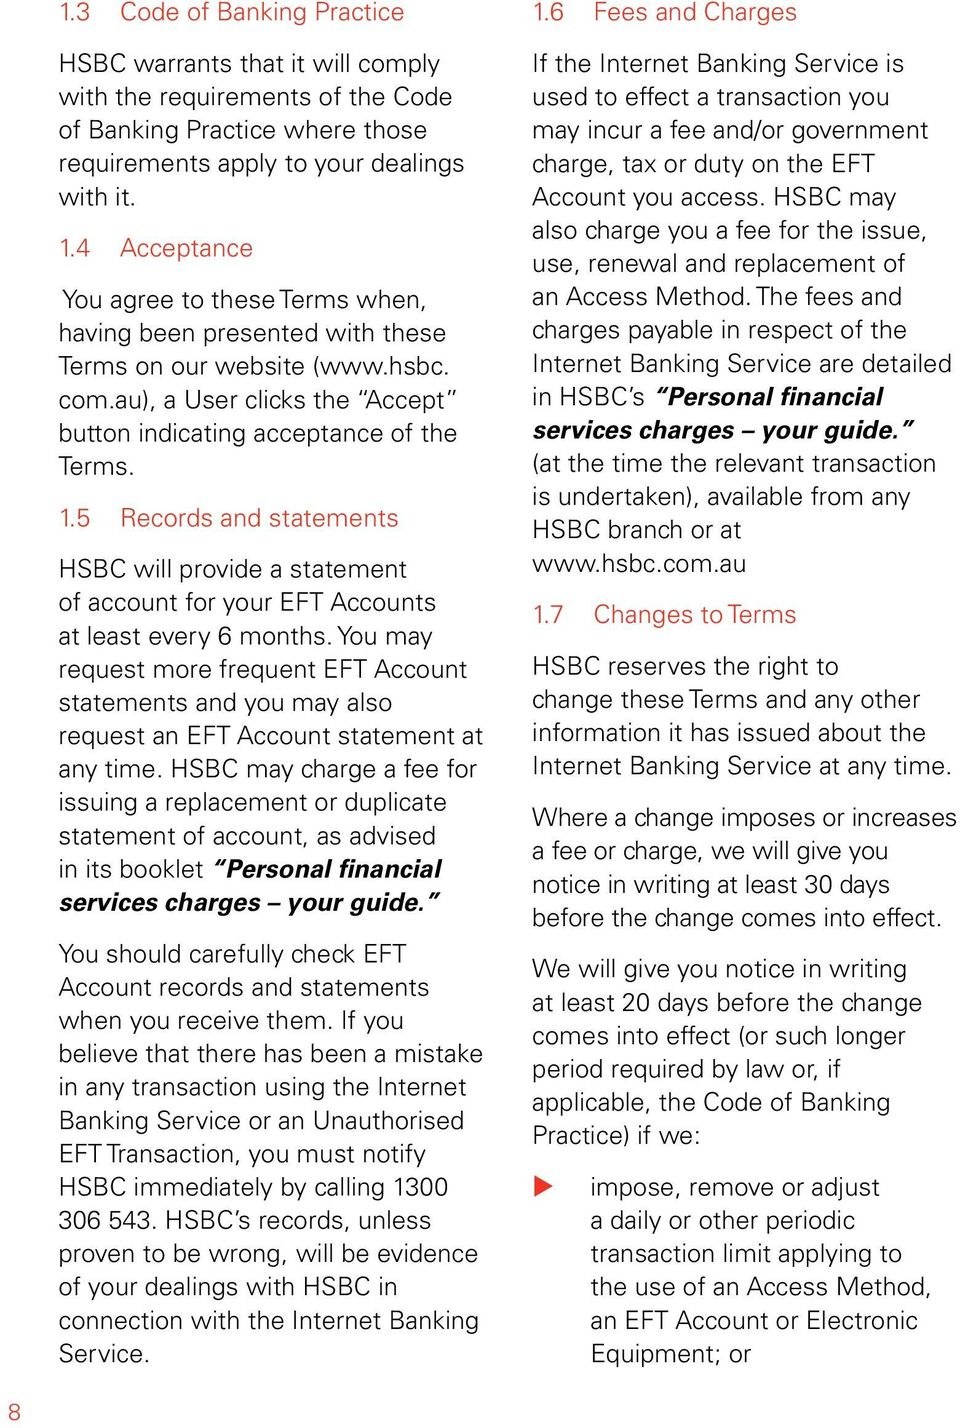 5 Records and statements HSBC will provide a statement of accont for yor EFT Acconts at least every 6 months.